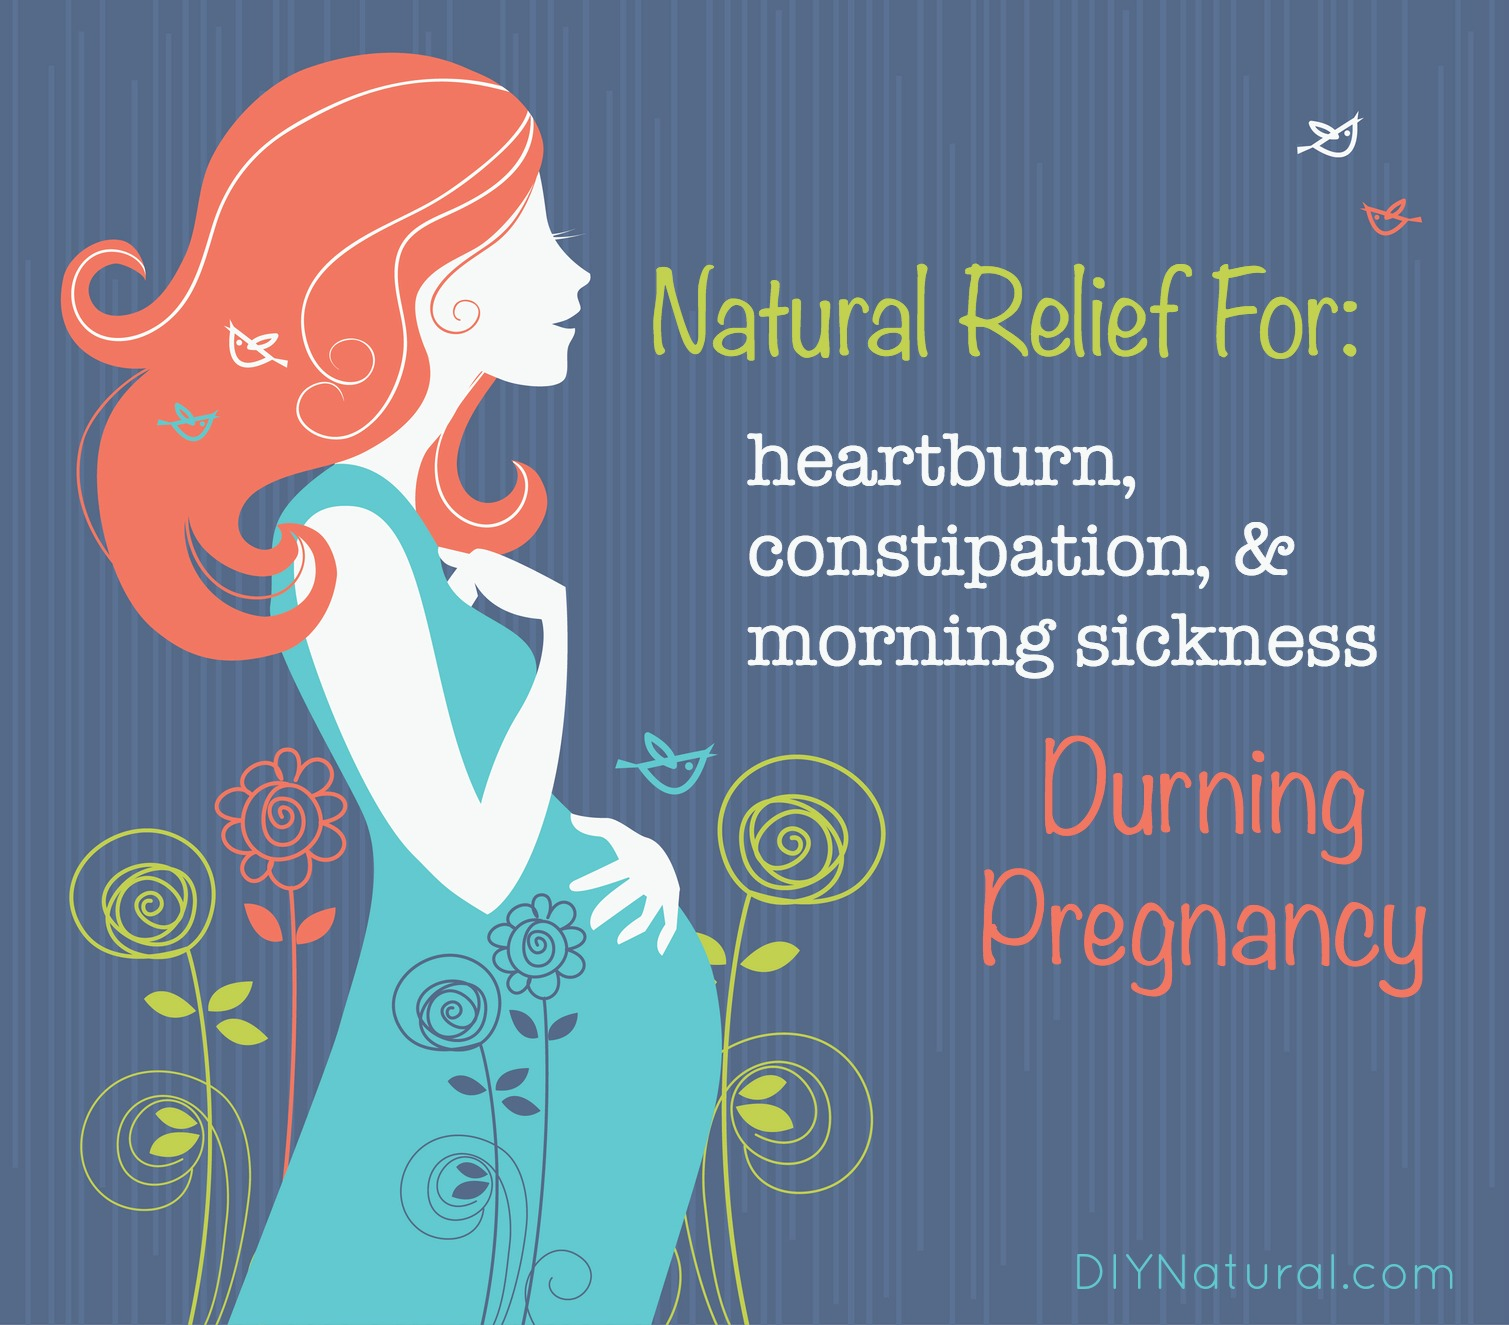 Natural Relief Of Heartburn During Pregnancy